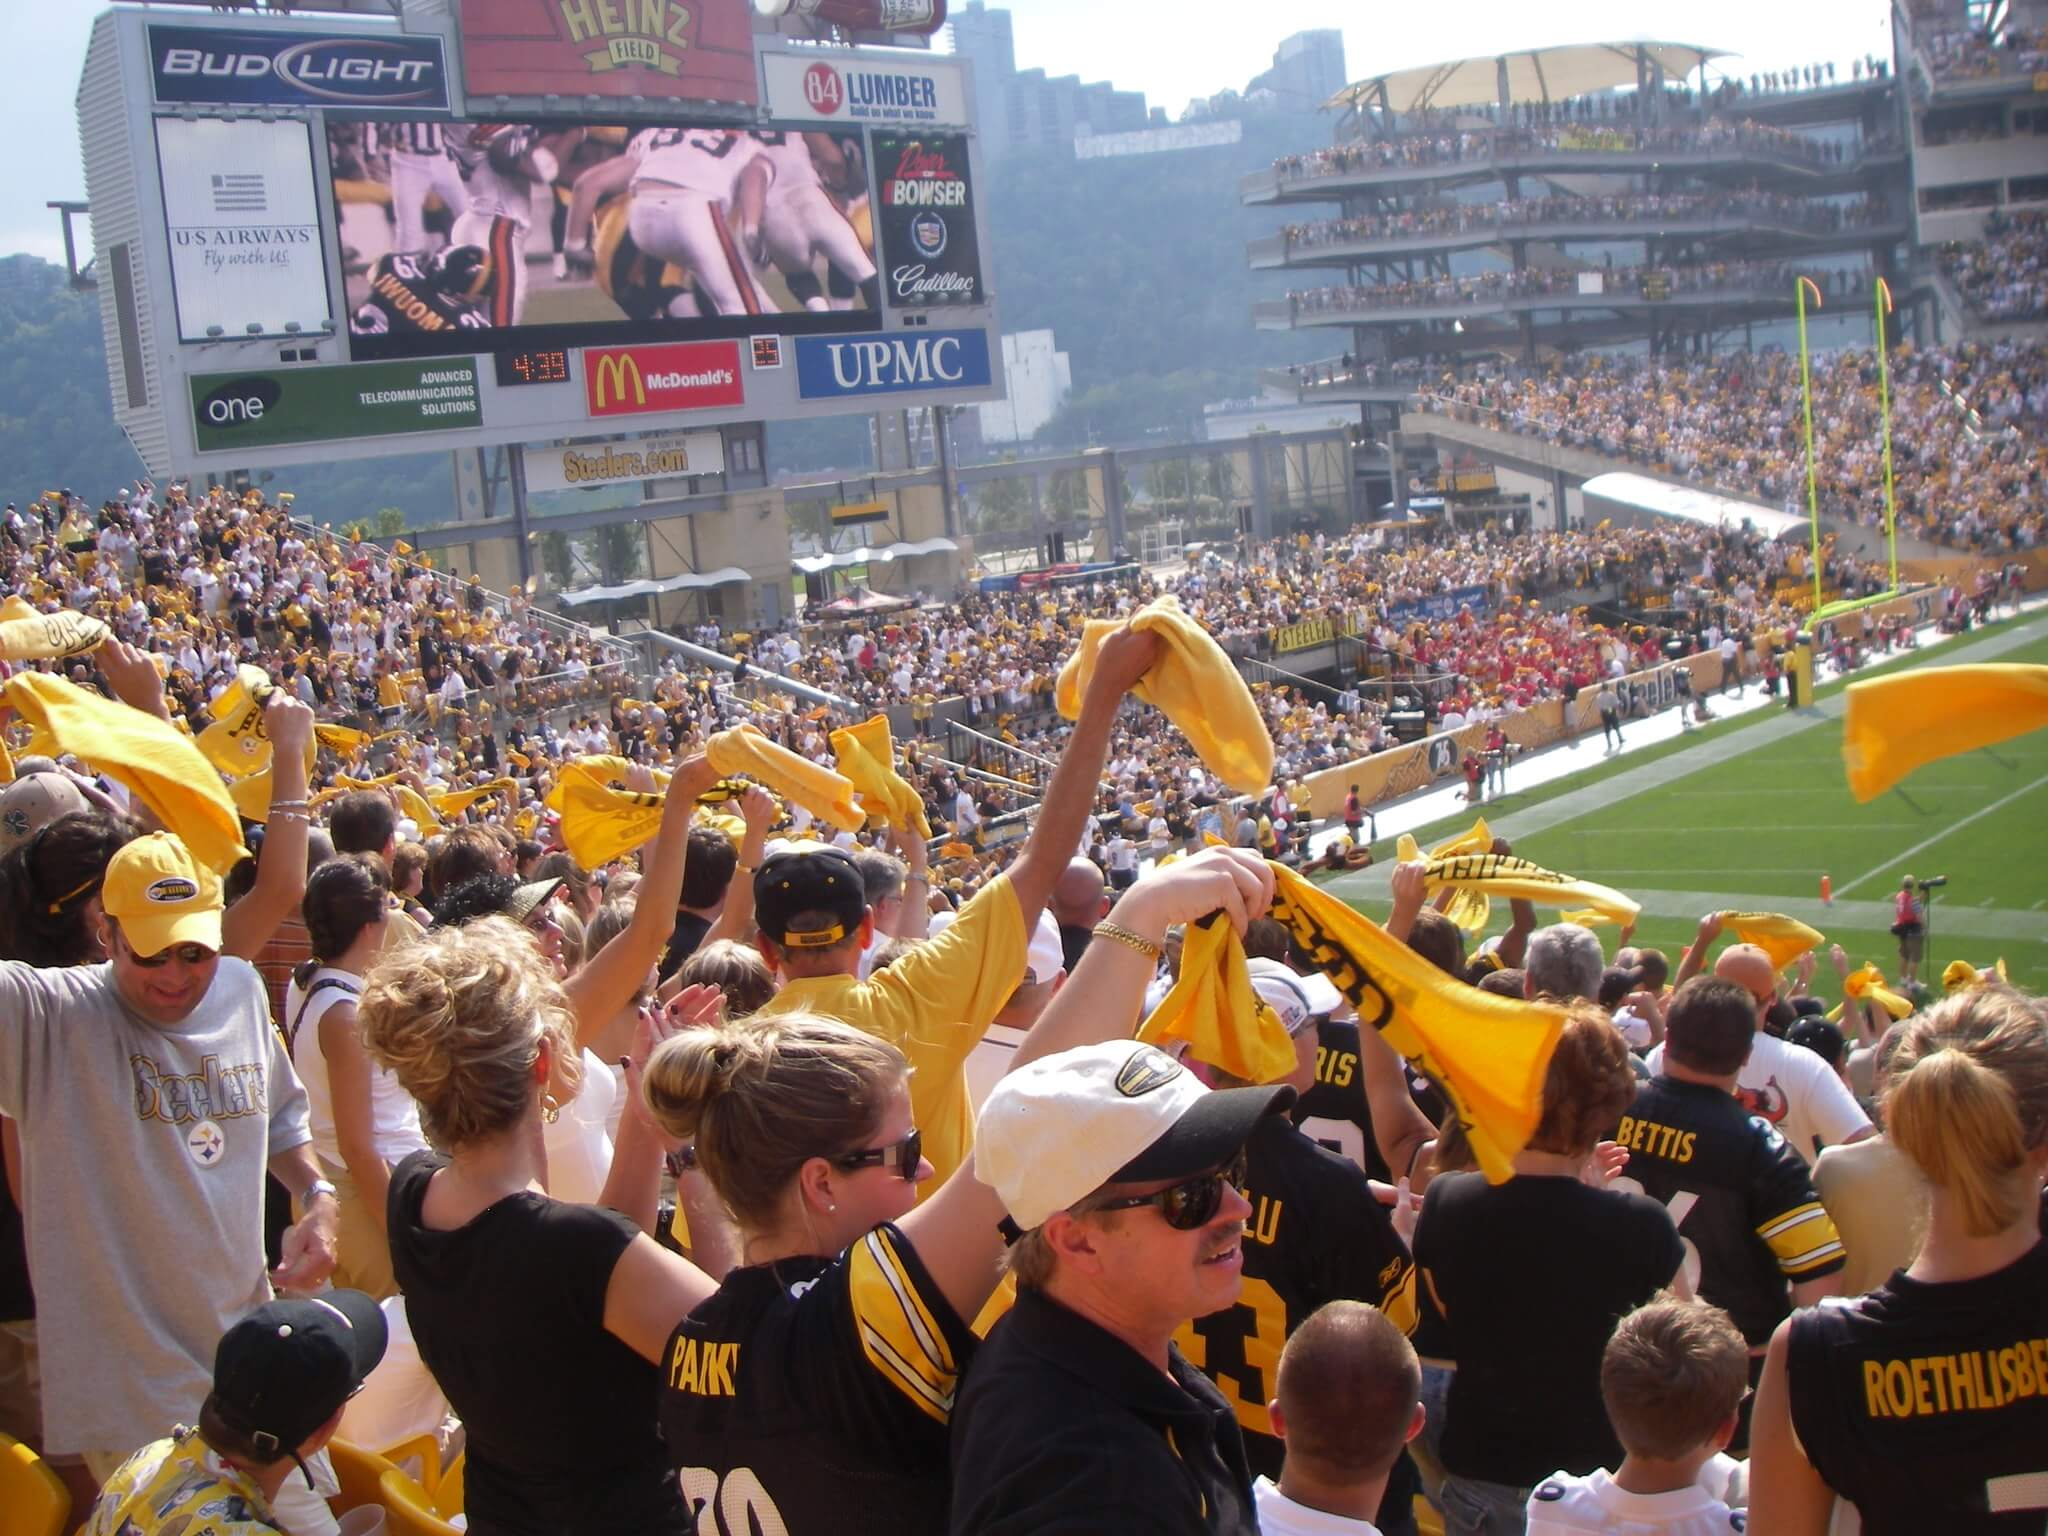 Pittsburgh Steelers fans terrible towel tradition